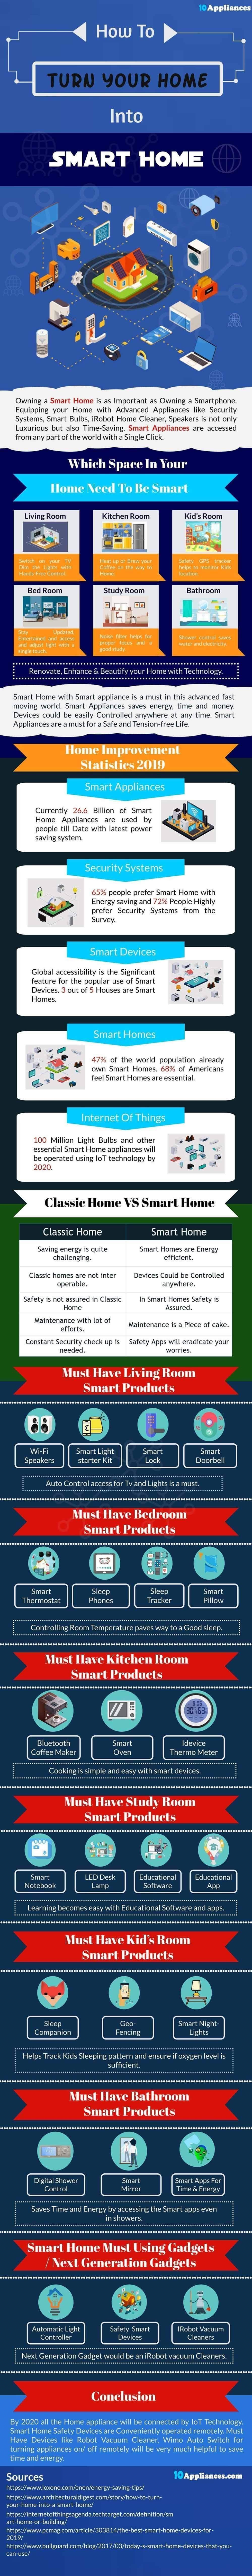 How to turn your home into an intelligent home in 2019 #infographic